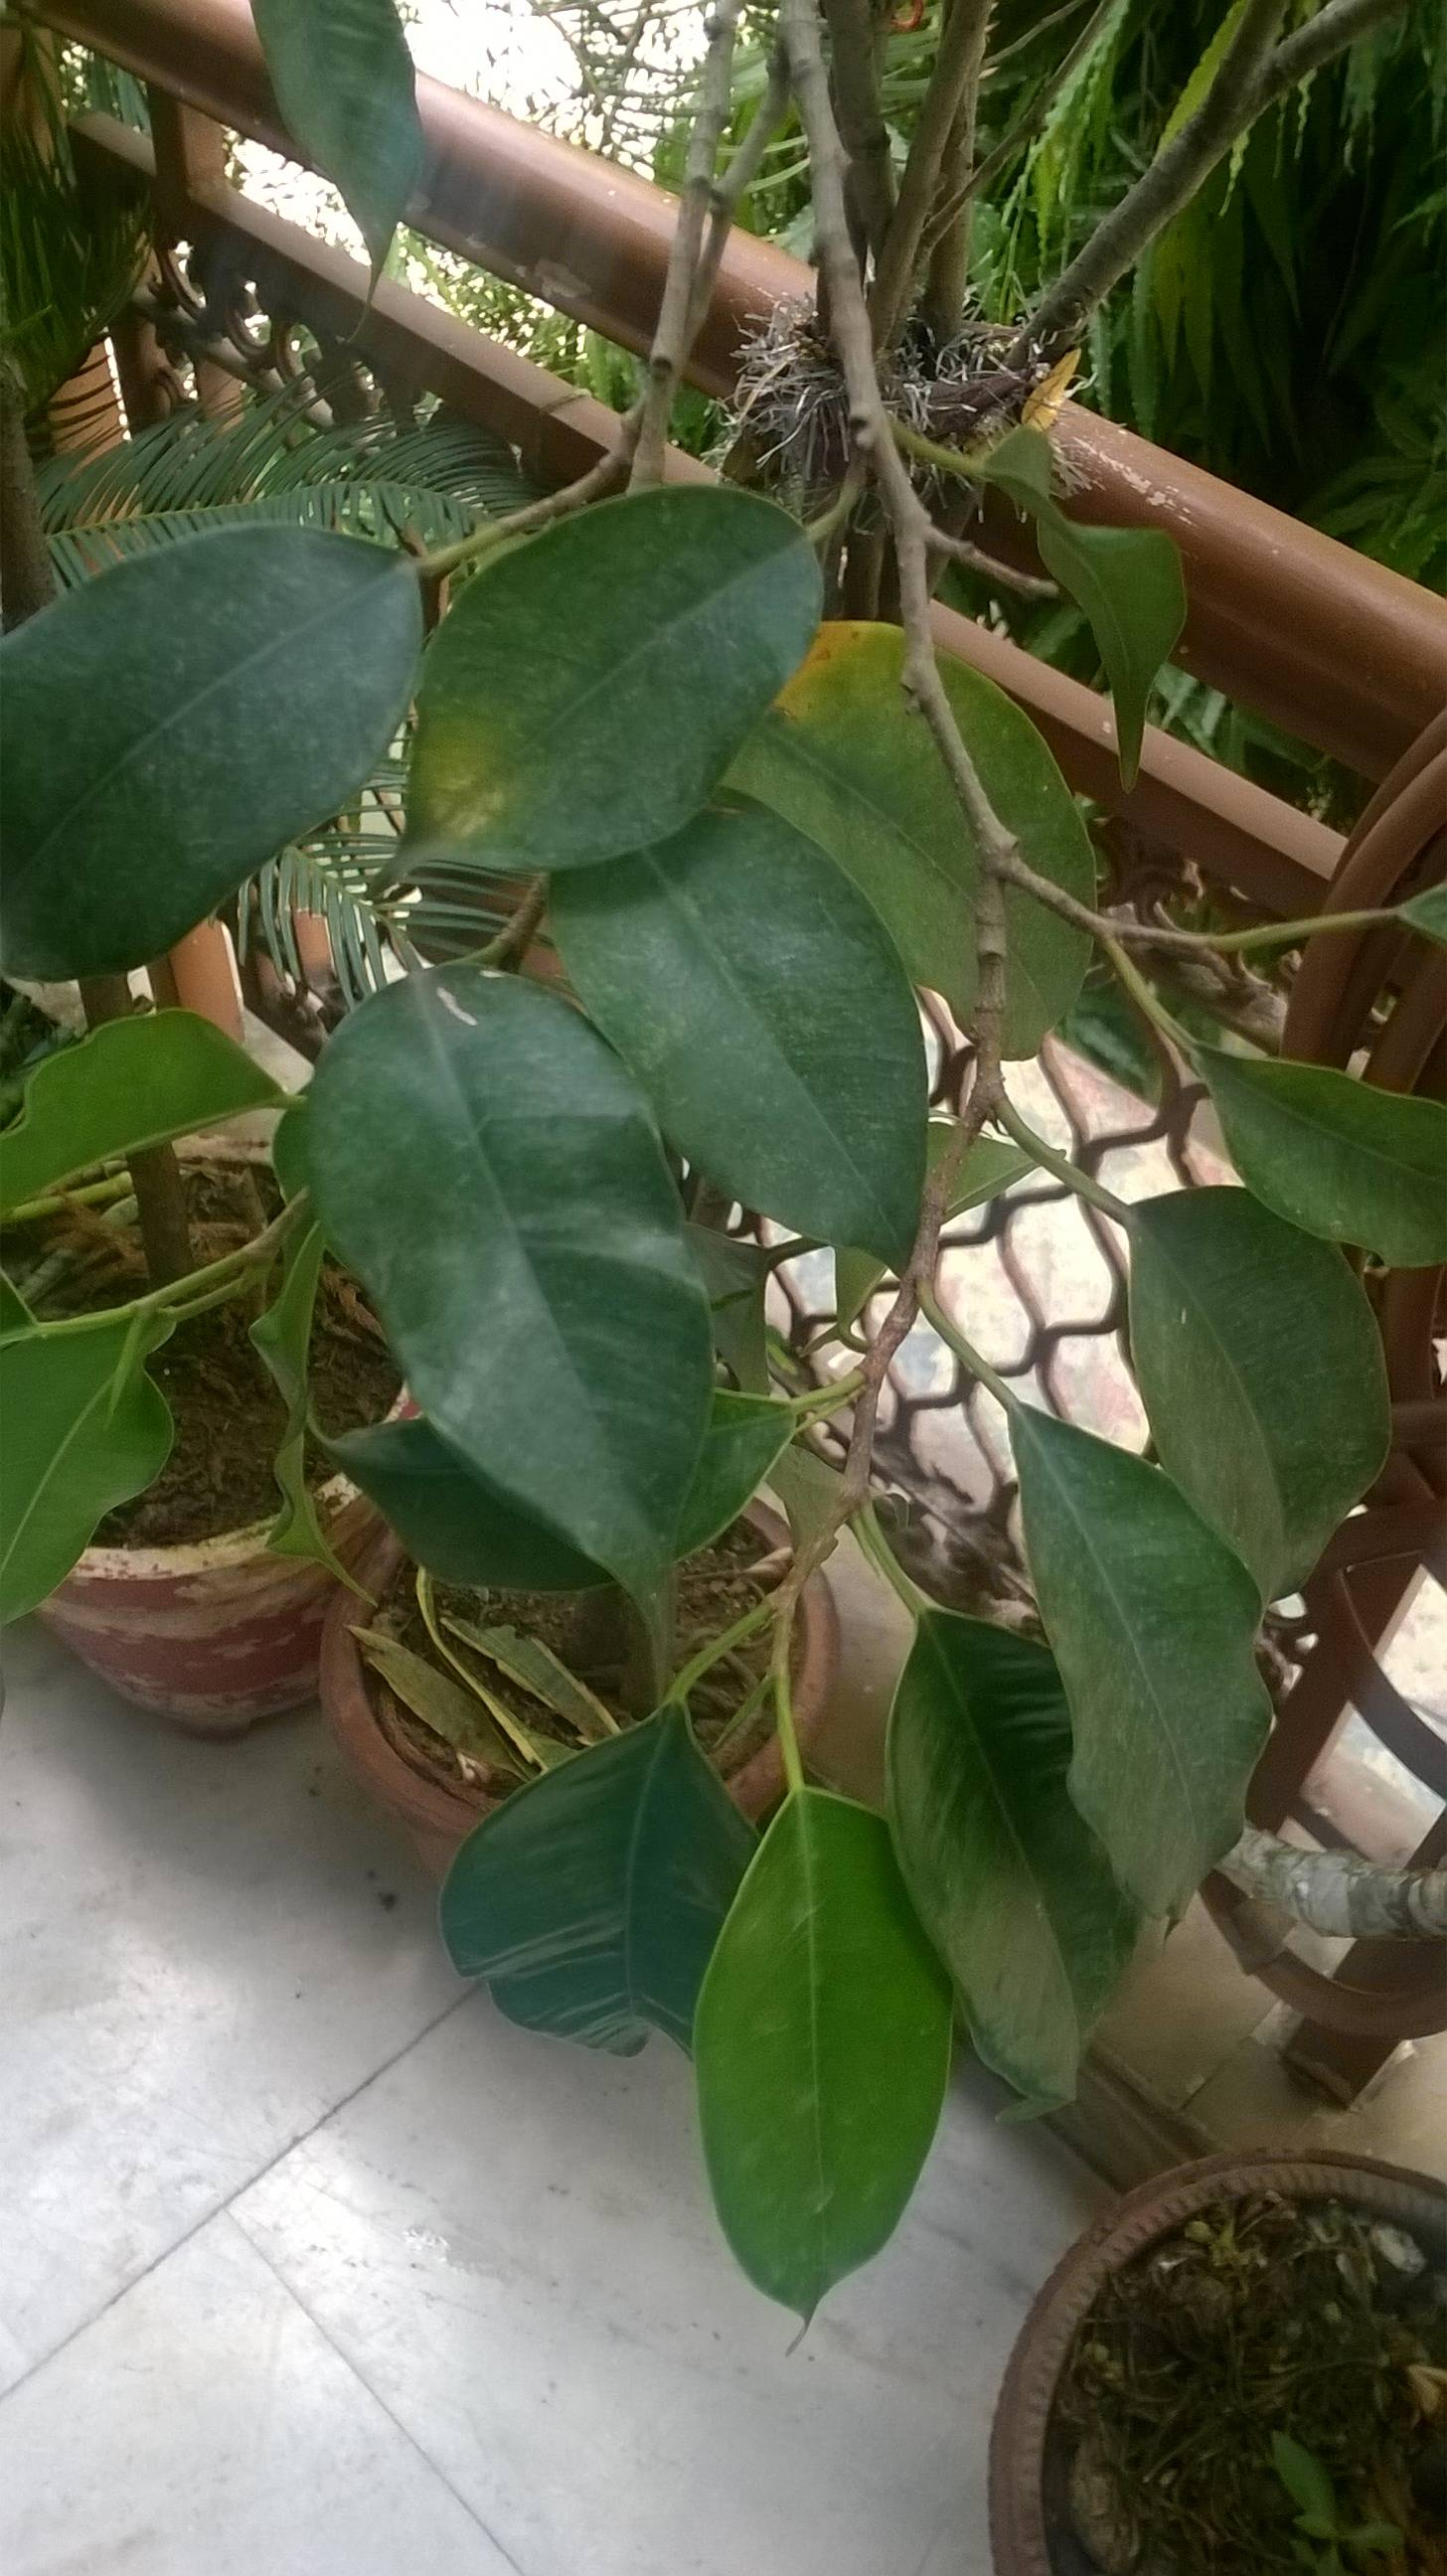 Ficus Benjamina Houseplants - How Should I Re-pot A Severely Root-bound